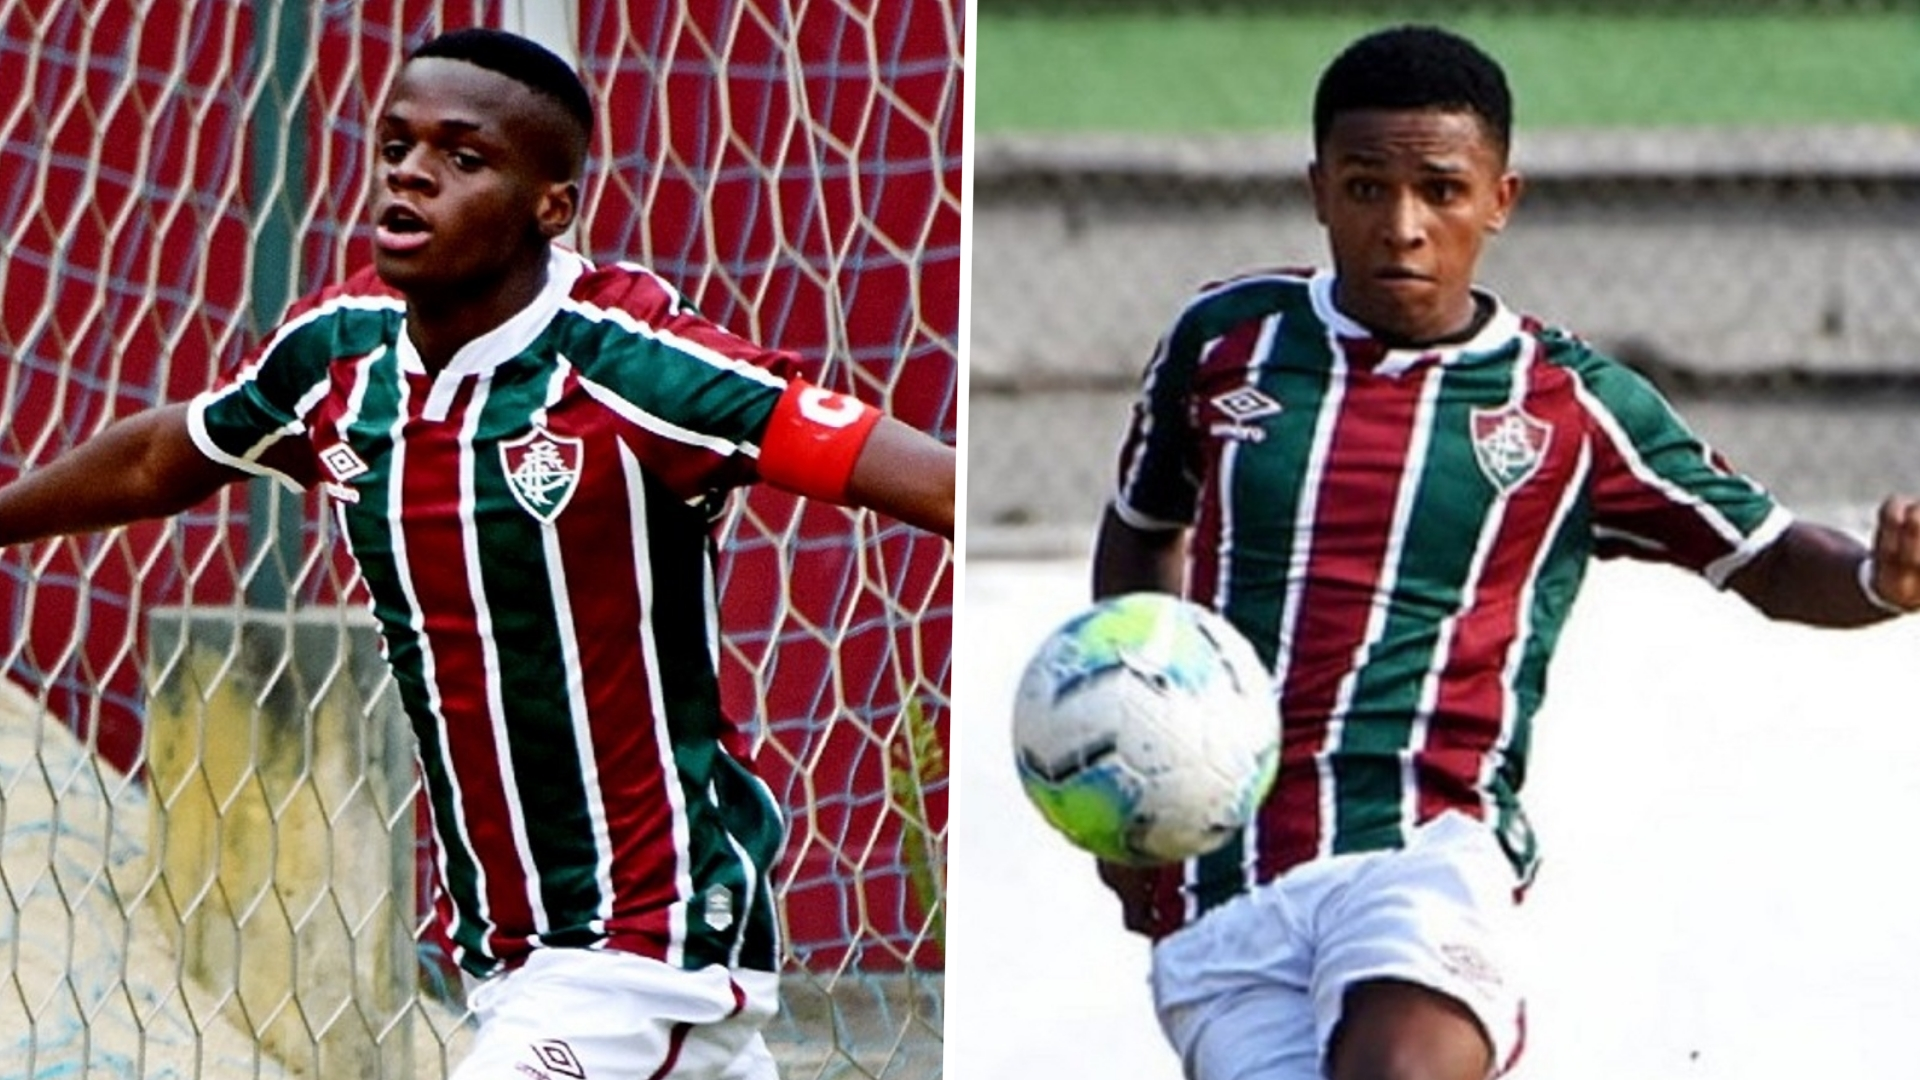 Man City closing in on deals for Fluminense youngsters Kayky & Metinho